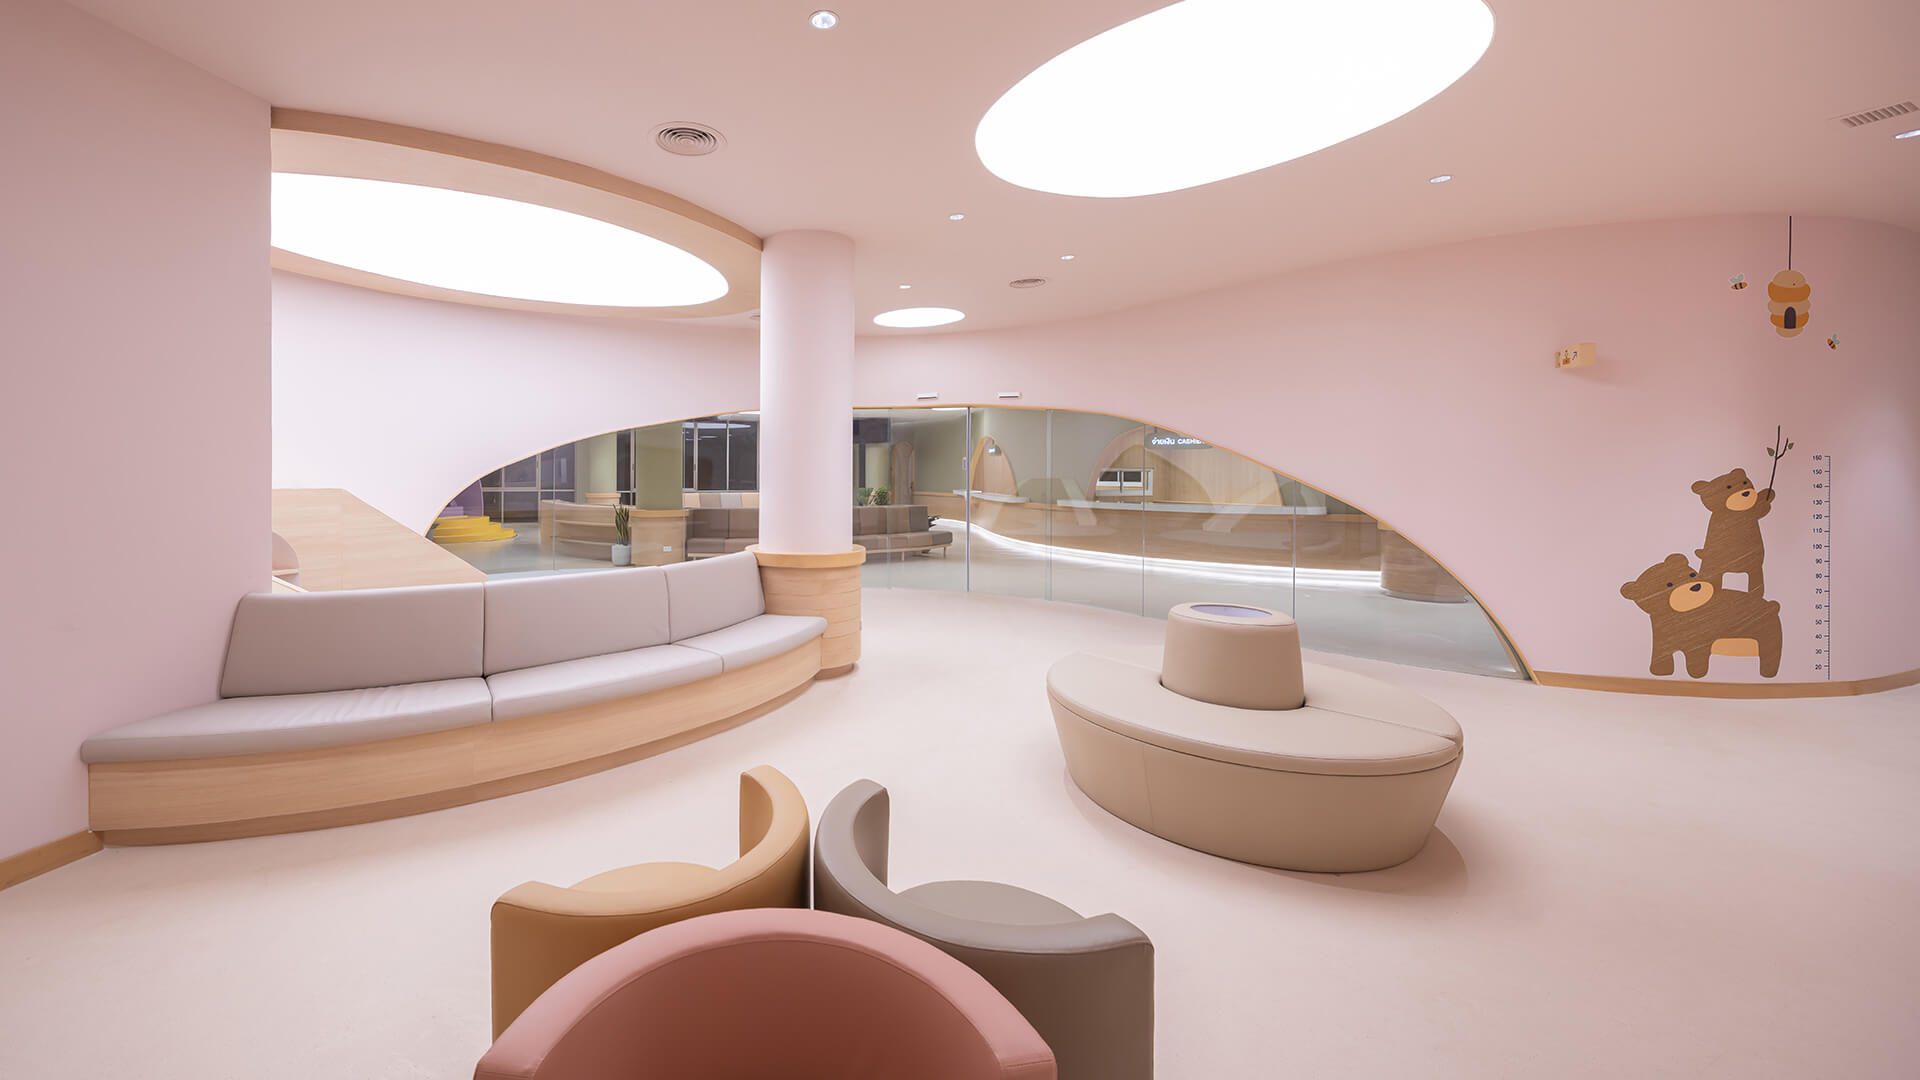 Inside the fun, colourful hospital | EKH Children's Hospital by Integrated Field | STIRworld